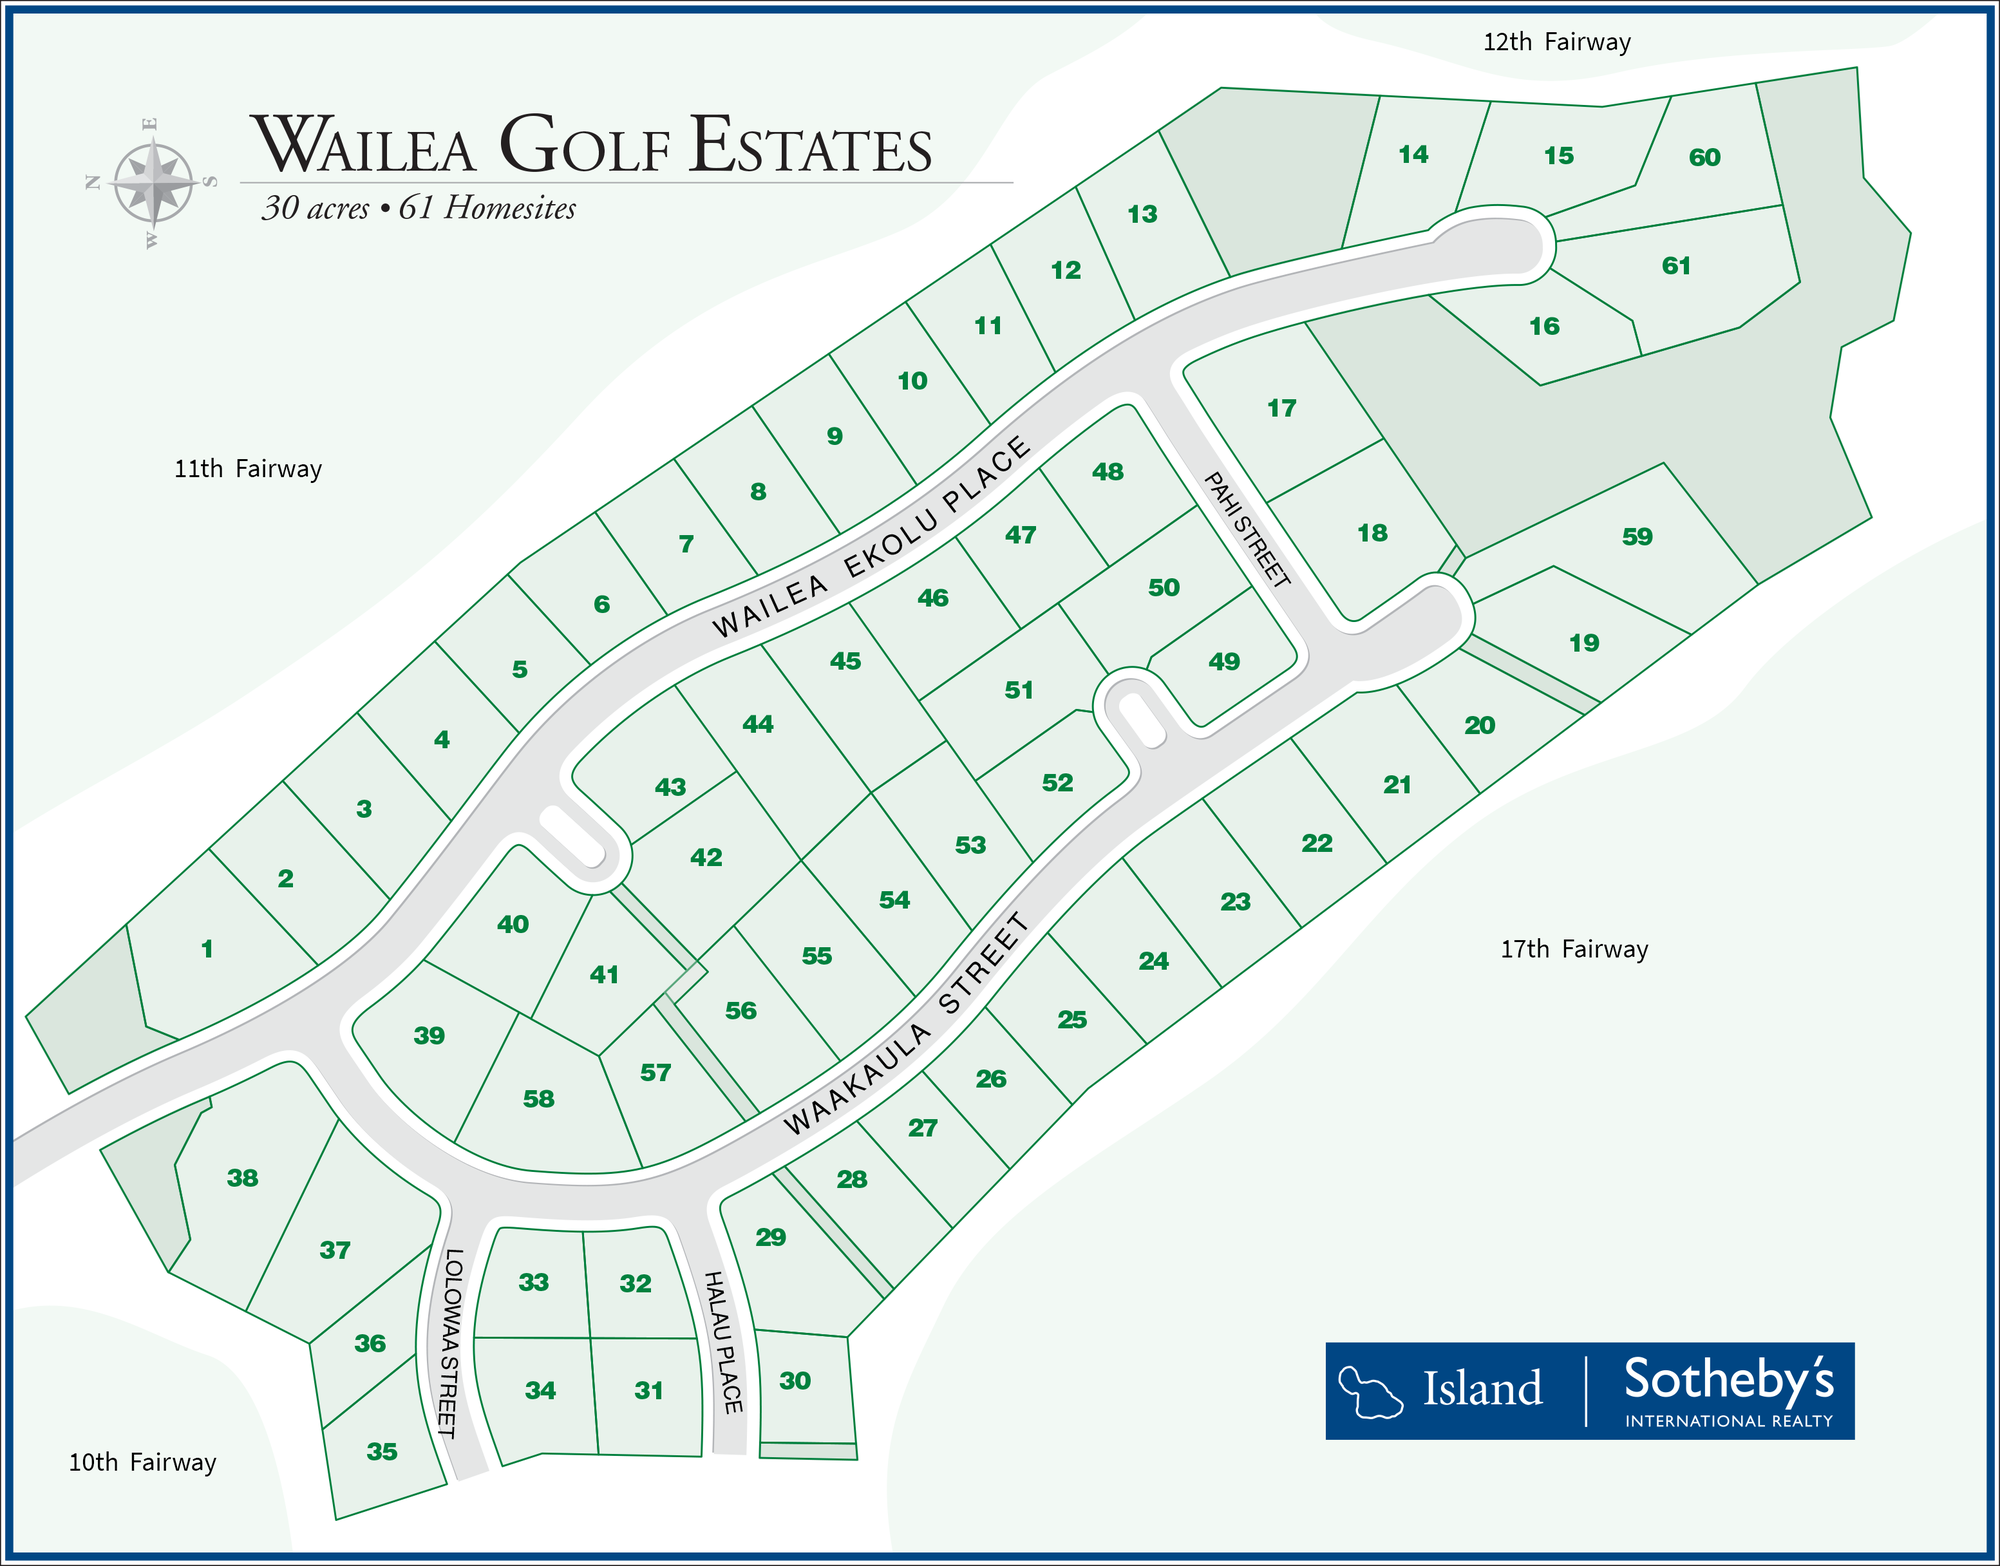 wailea golf estates map